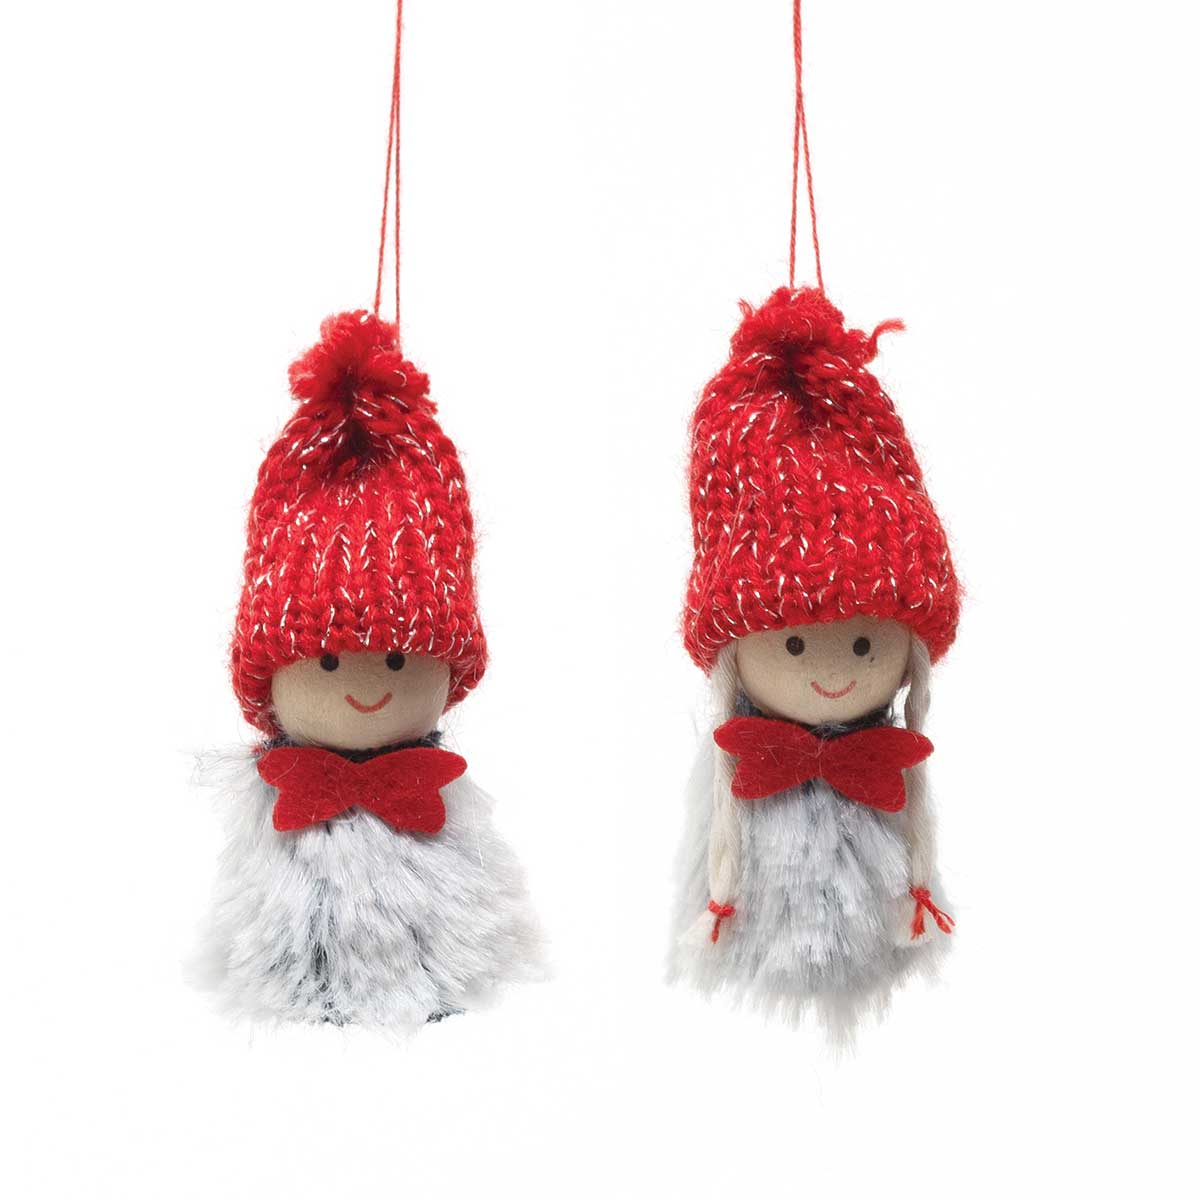 BOY & GIRL ORNAMENT WITH RED & SILVER SWEATER HAT, BOW